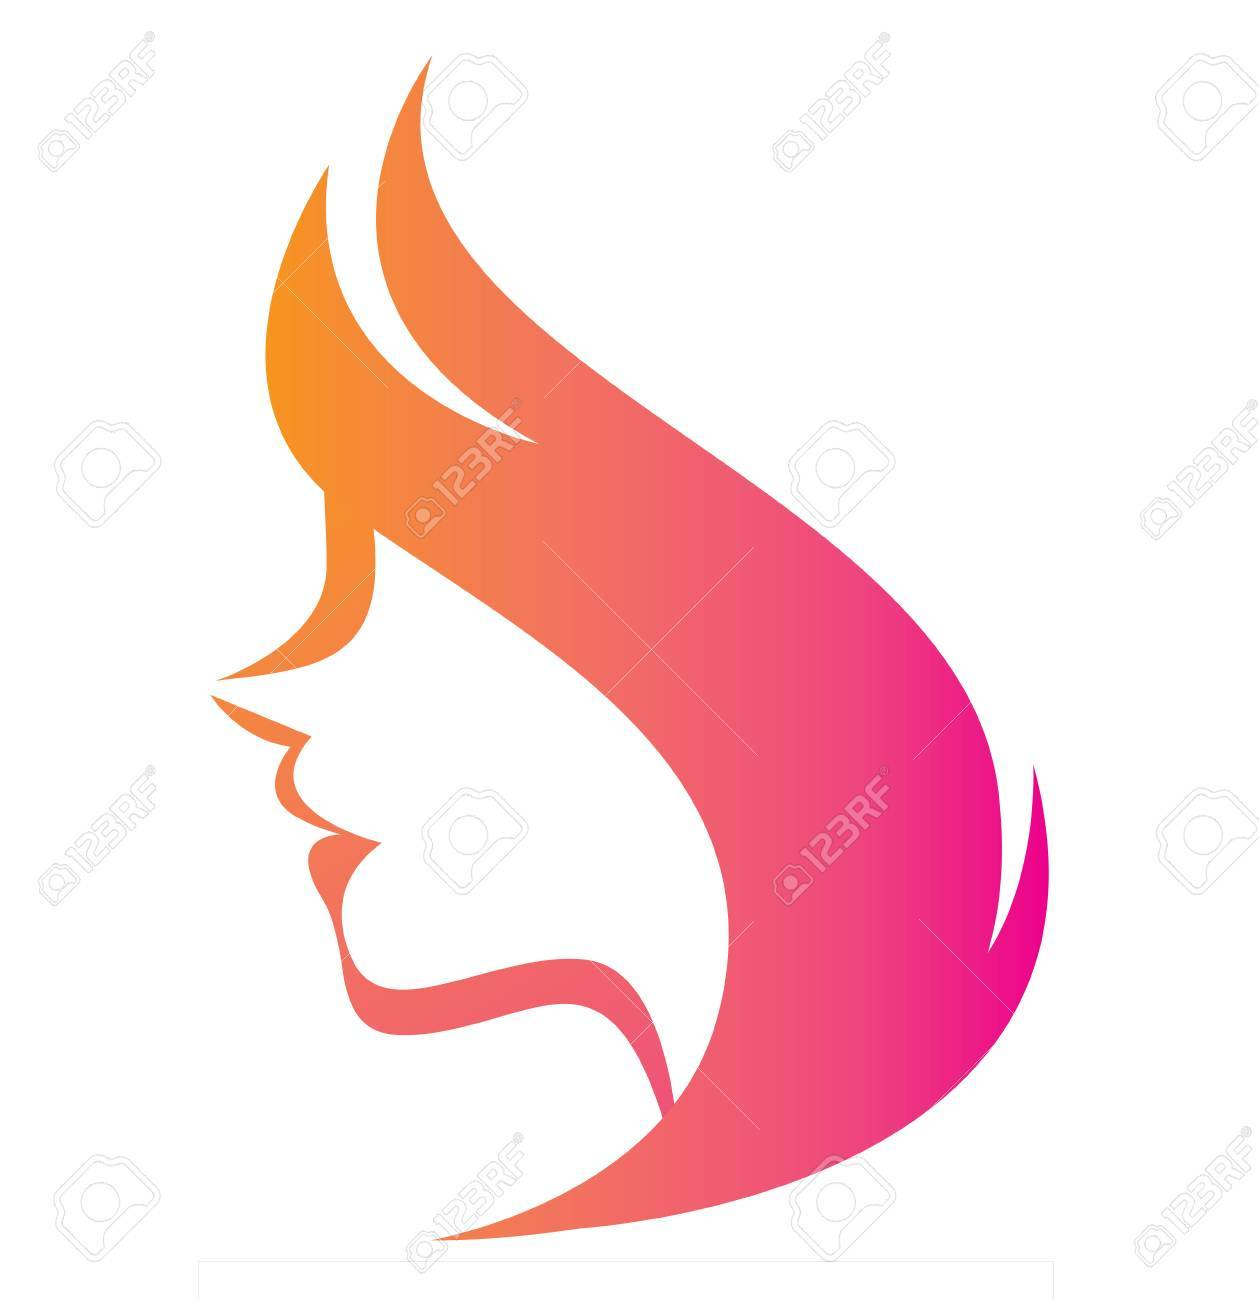 Vector Stylized Silhouette Of A Woman In Profile Template Logo ...